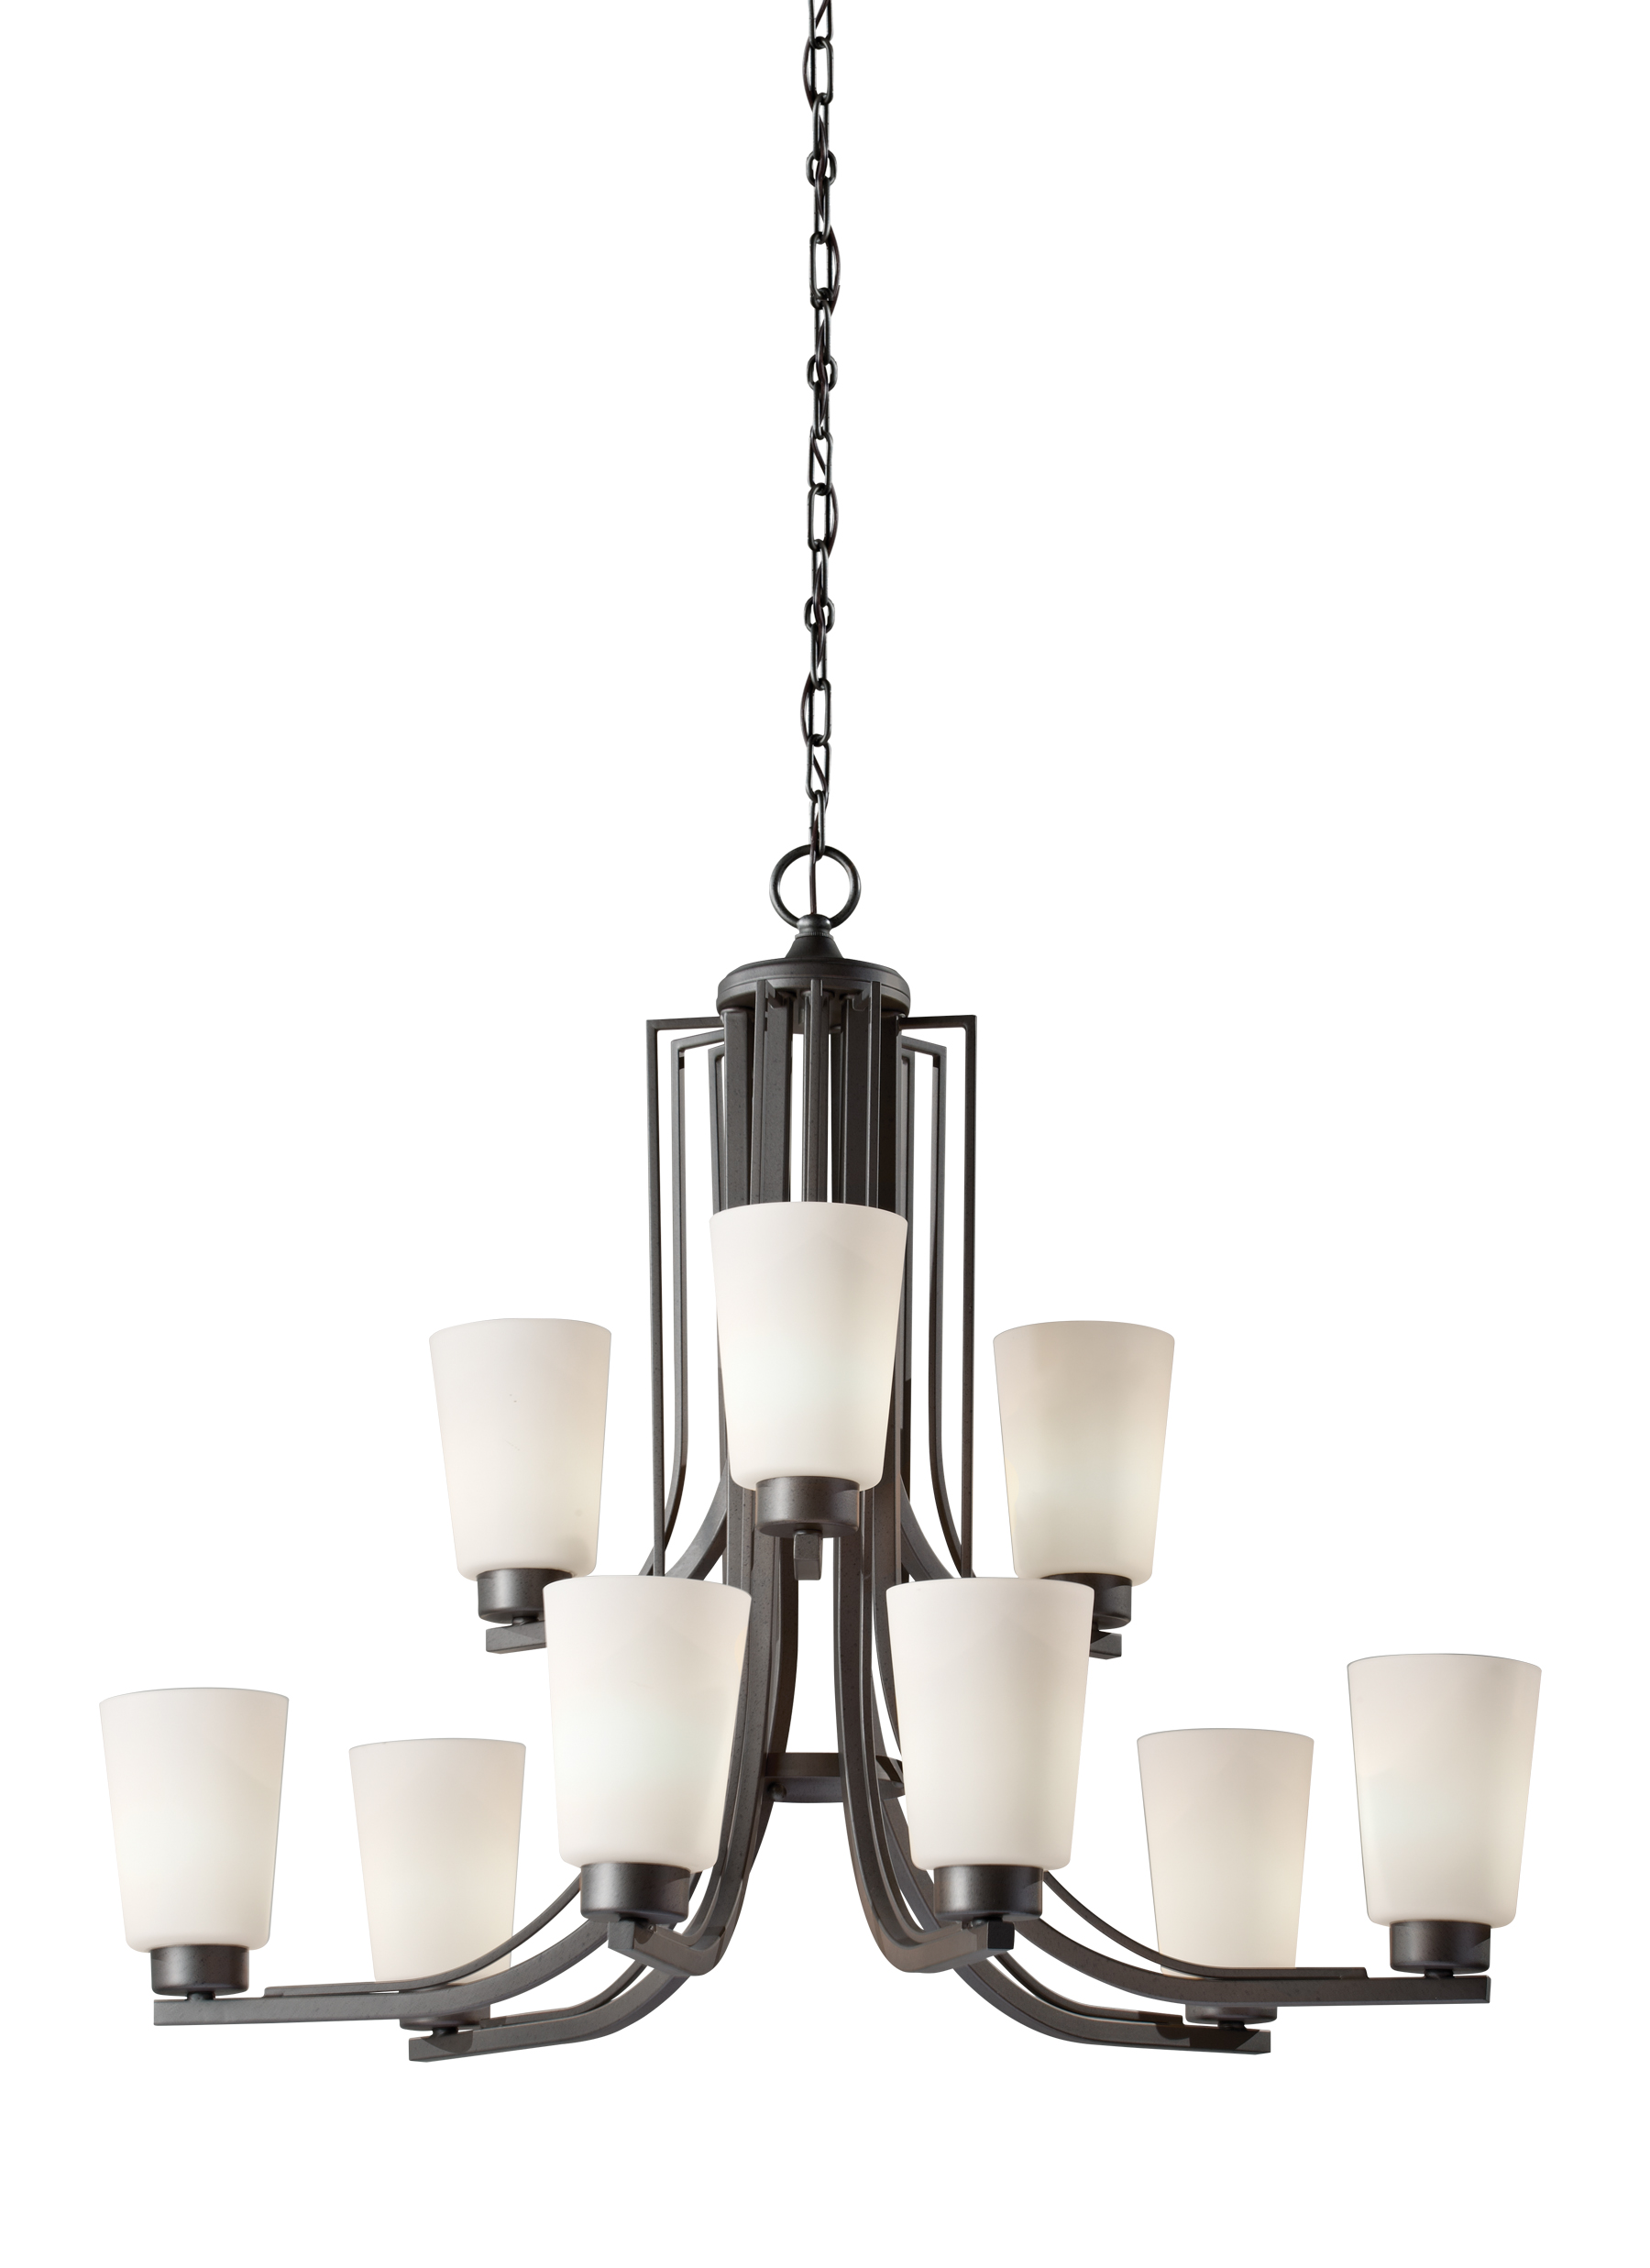 chandelier home degree mission santangelo with crosses colonial nth forge product